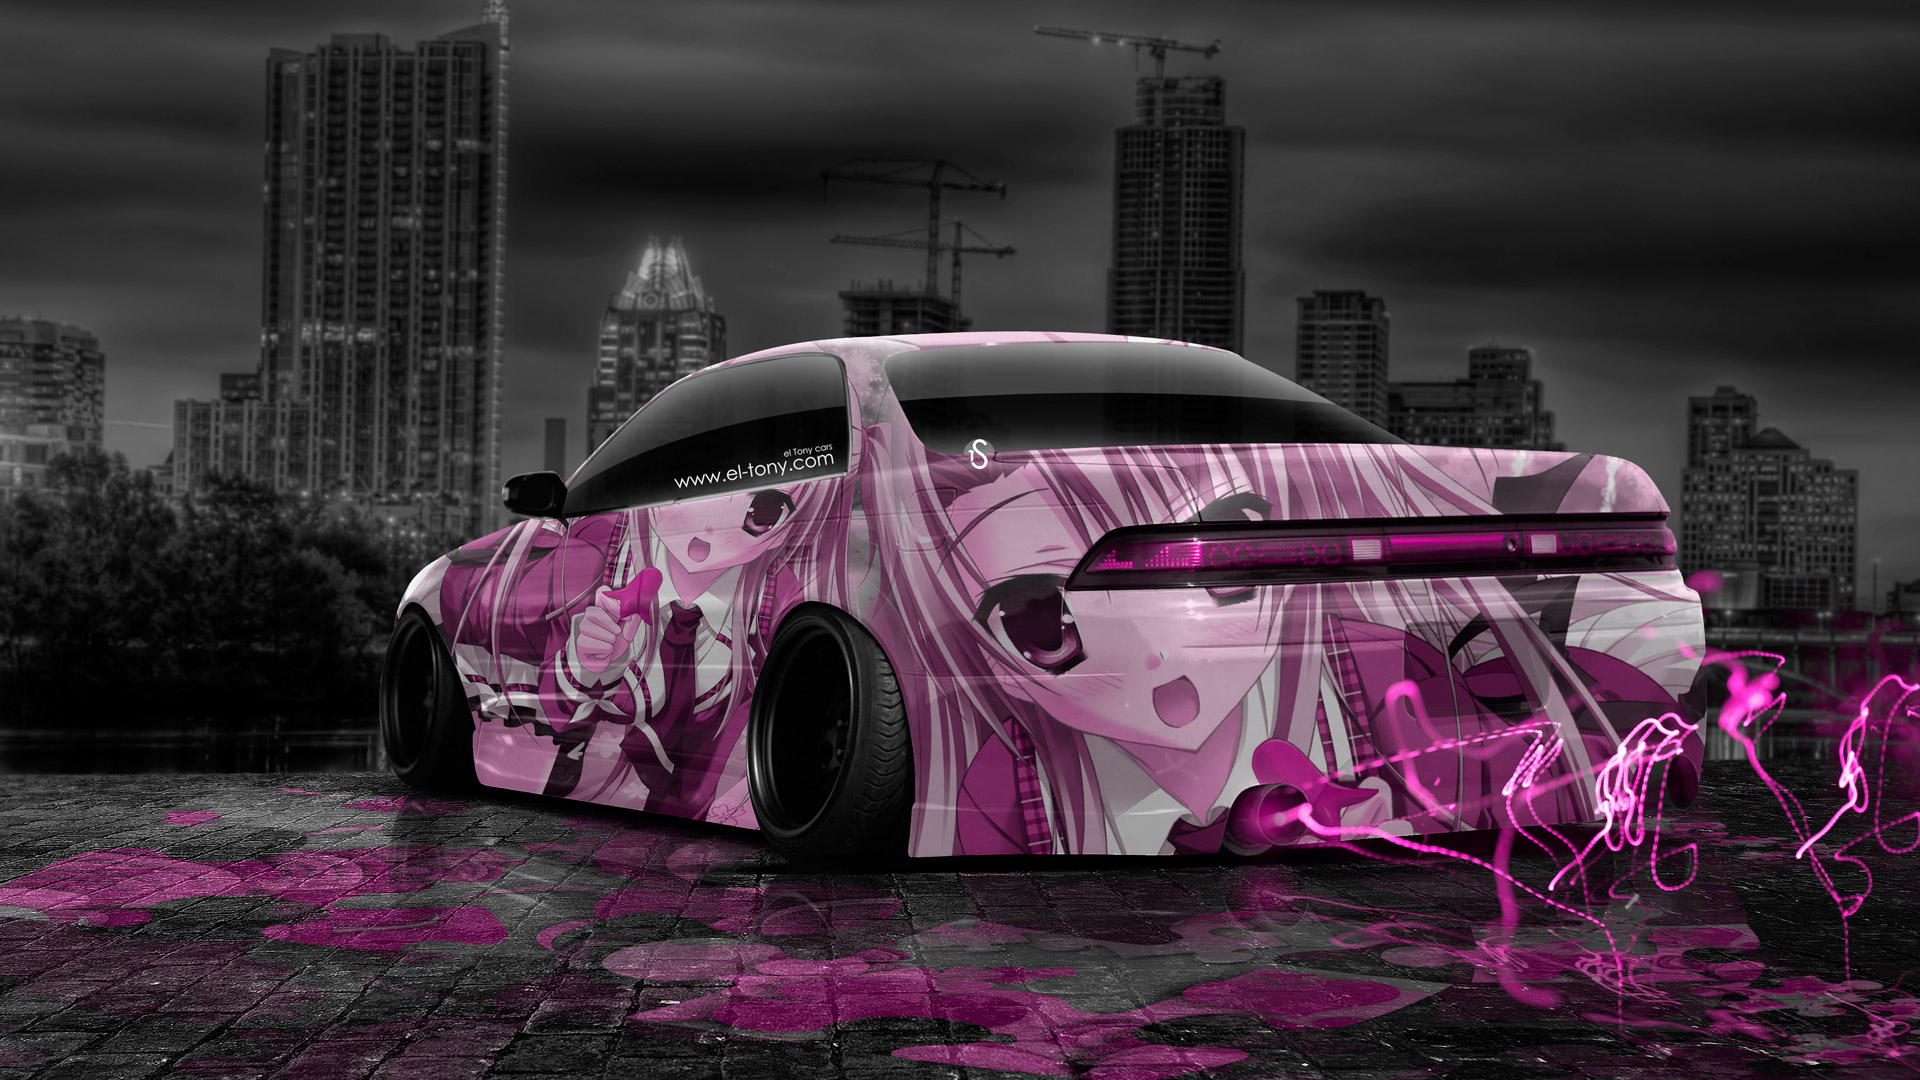 Toyota Mark2 JZX90 JDM Tuning Anime Aerography Girl